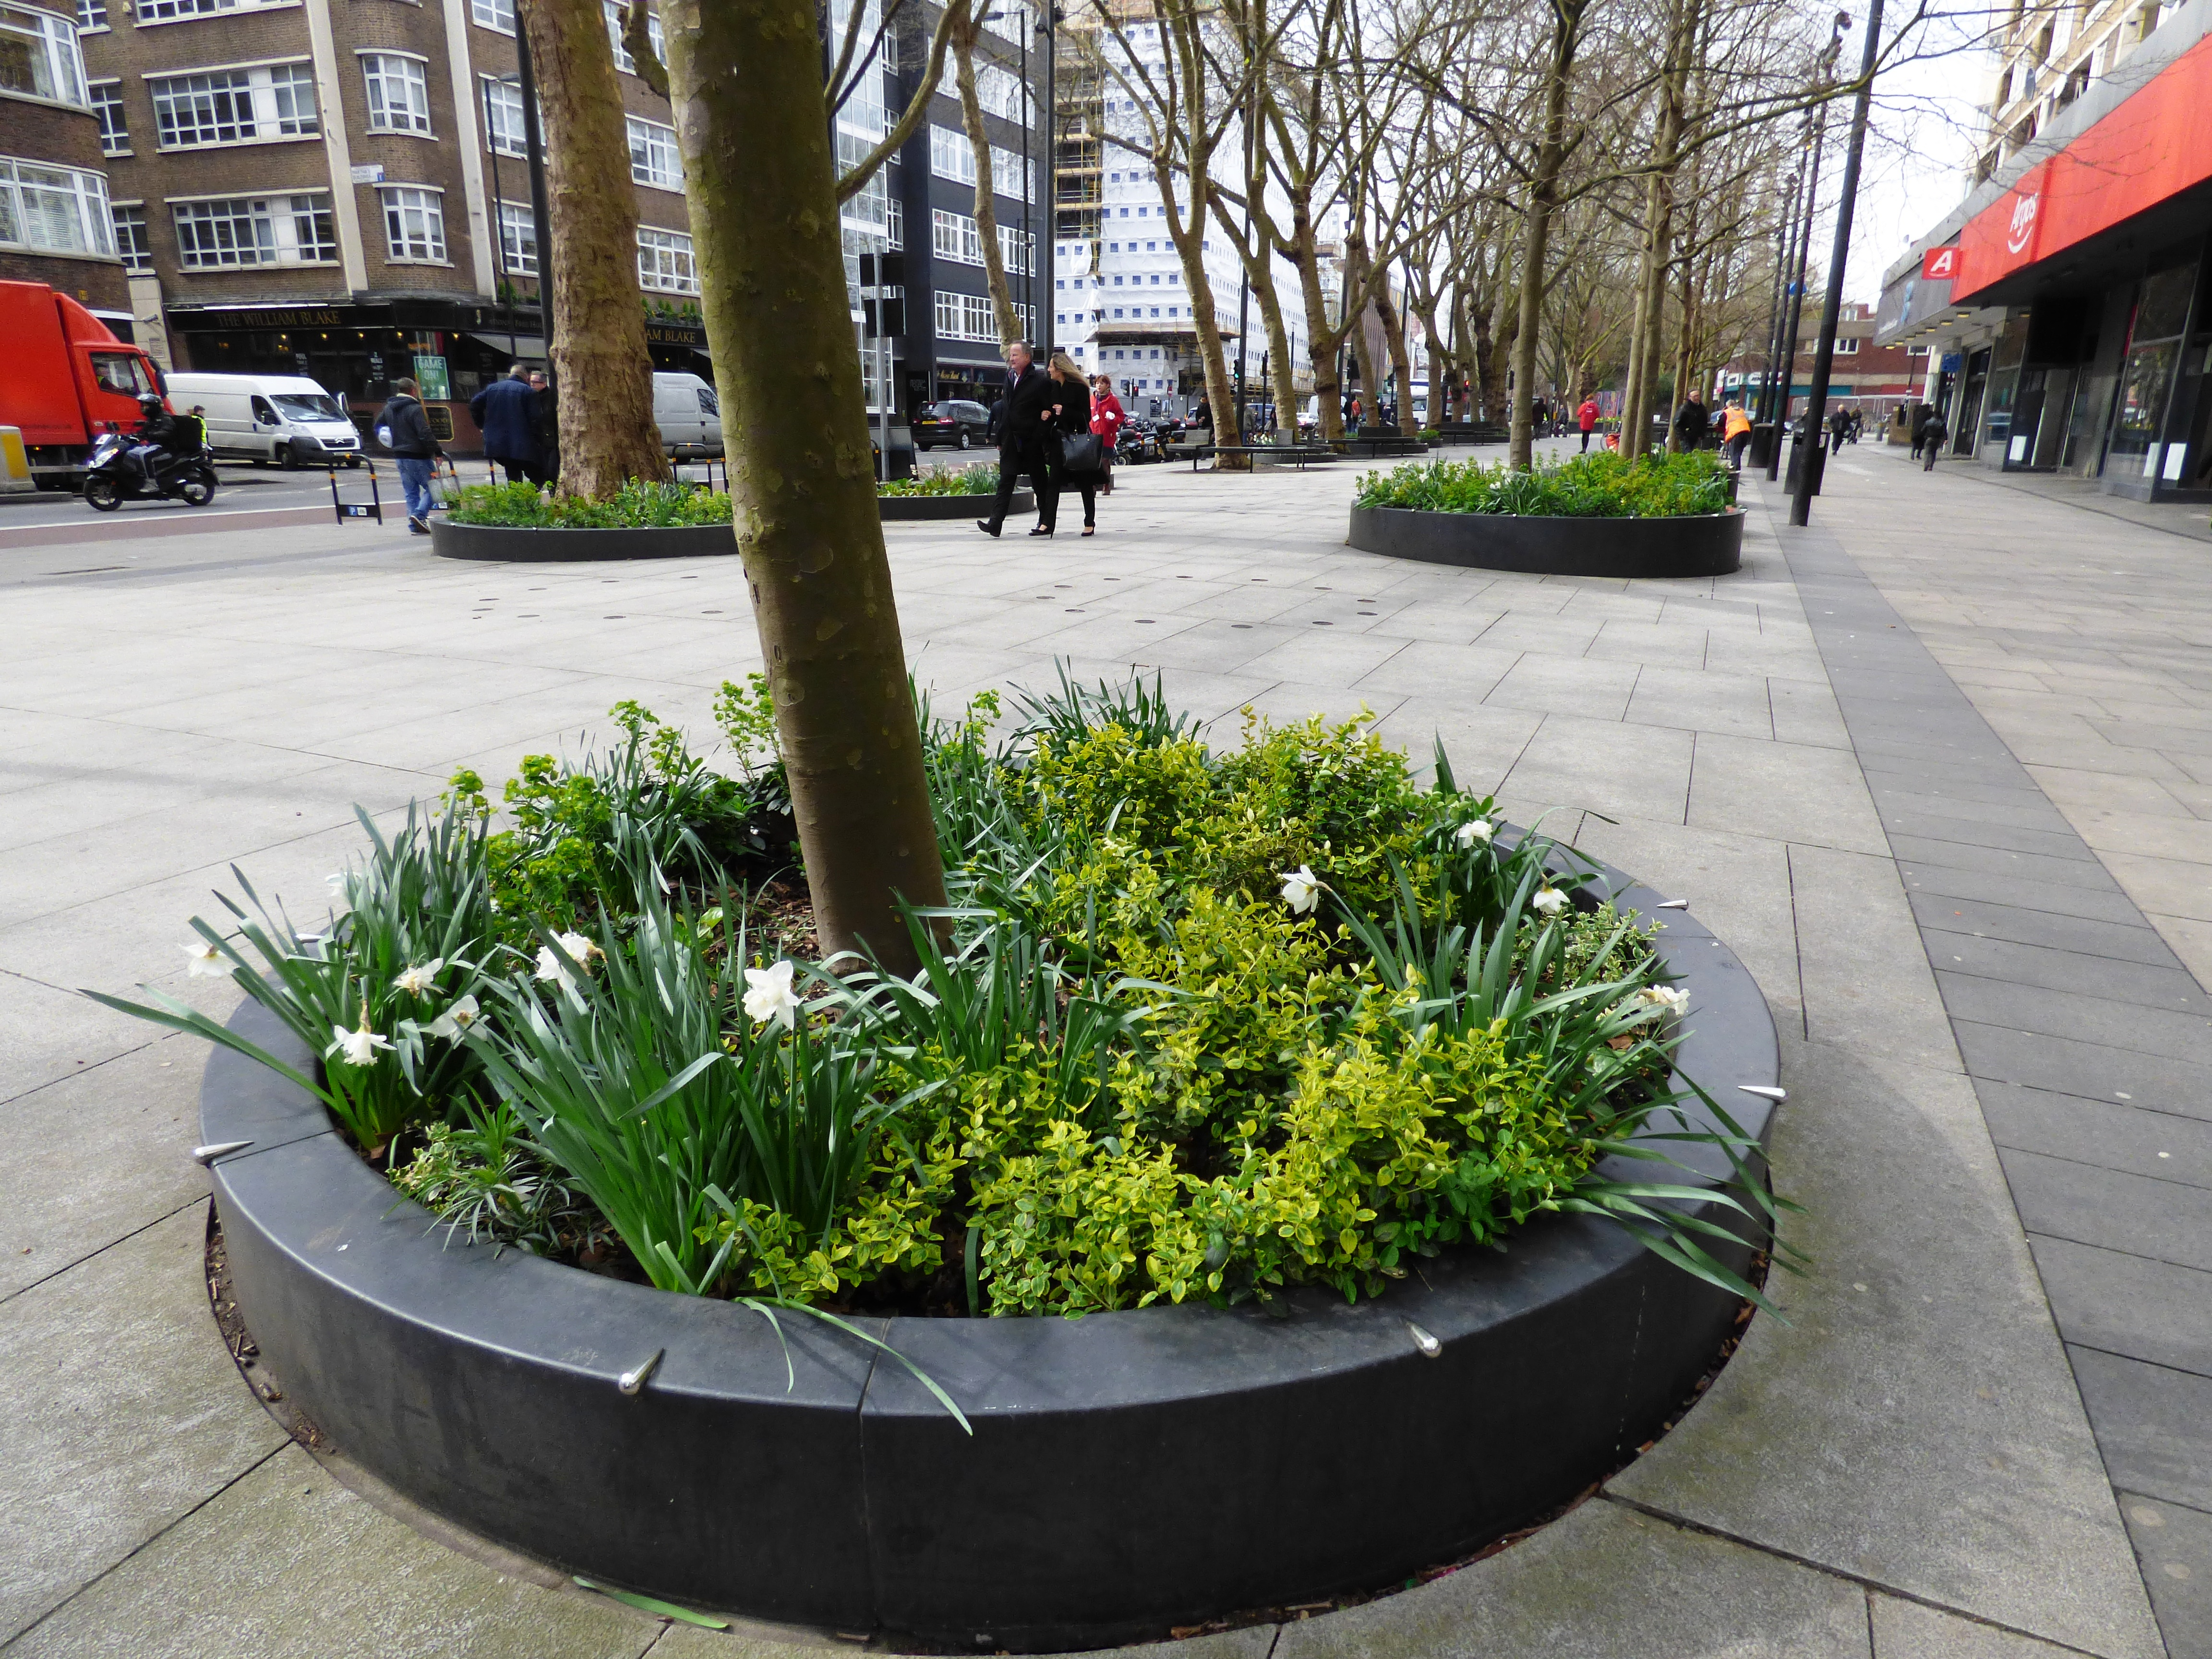 20170323_Islington_Old-Street_Bowls-of-Green-Space